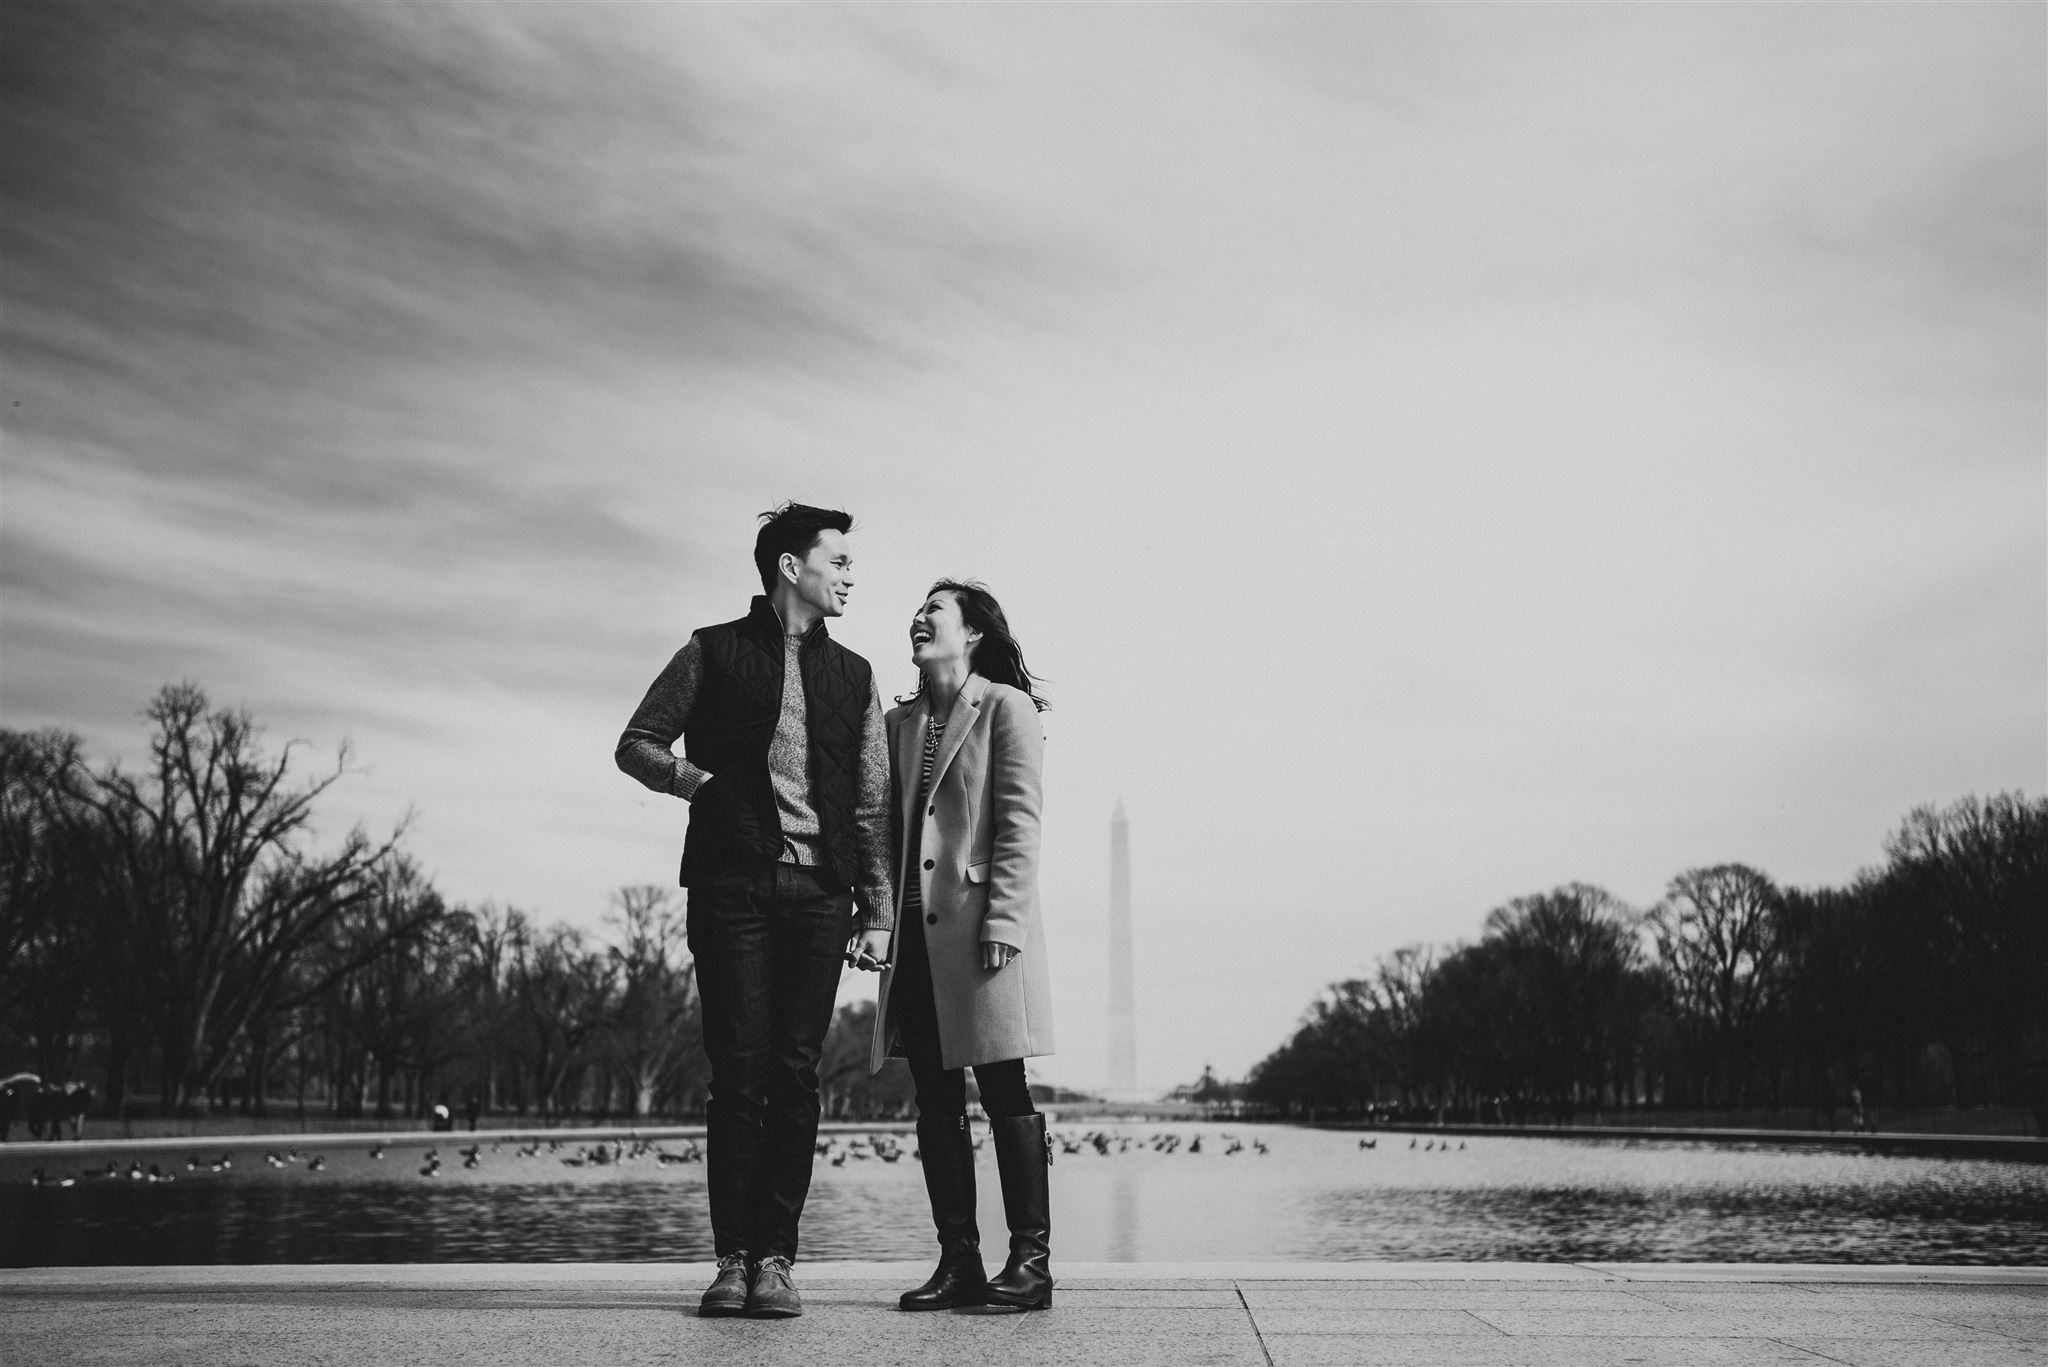 Lincoln-Memorial-Reflecting-Pool-engagement-picture-by-Gabriele-Stonyte-Photography